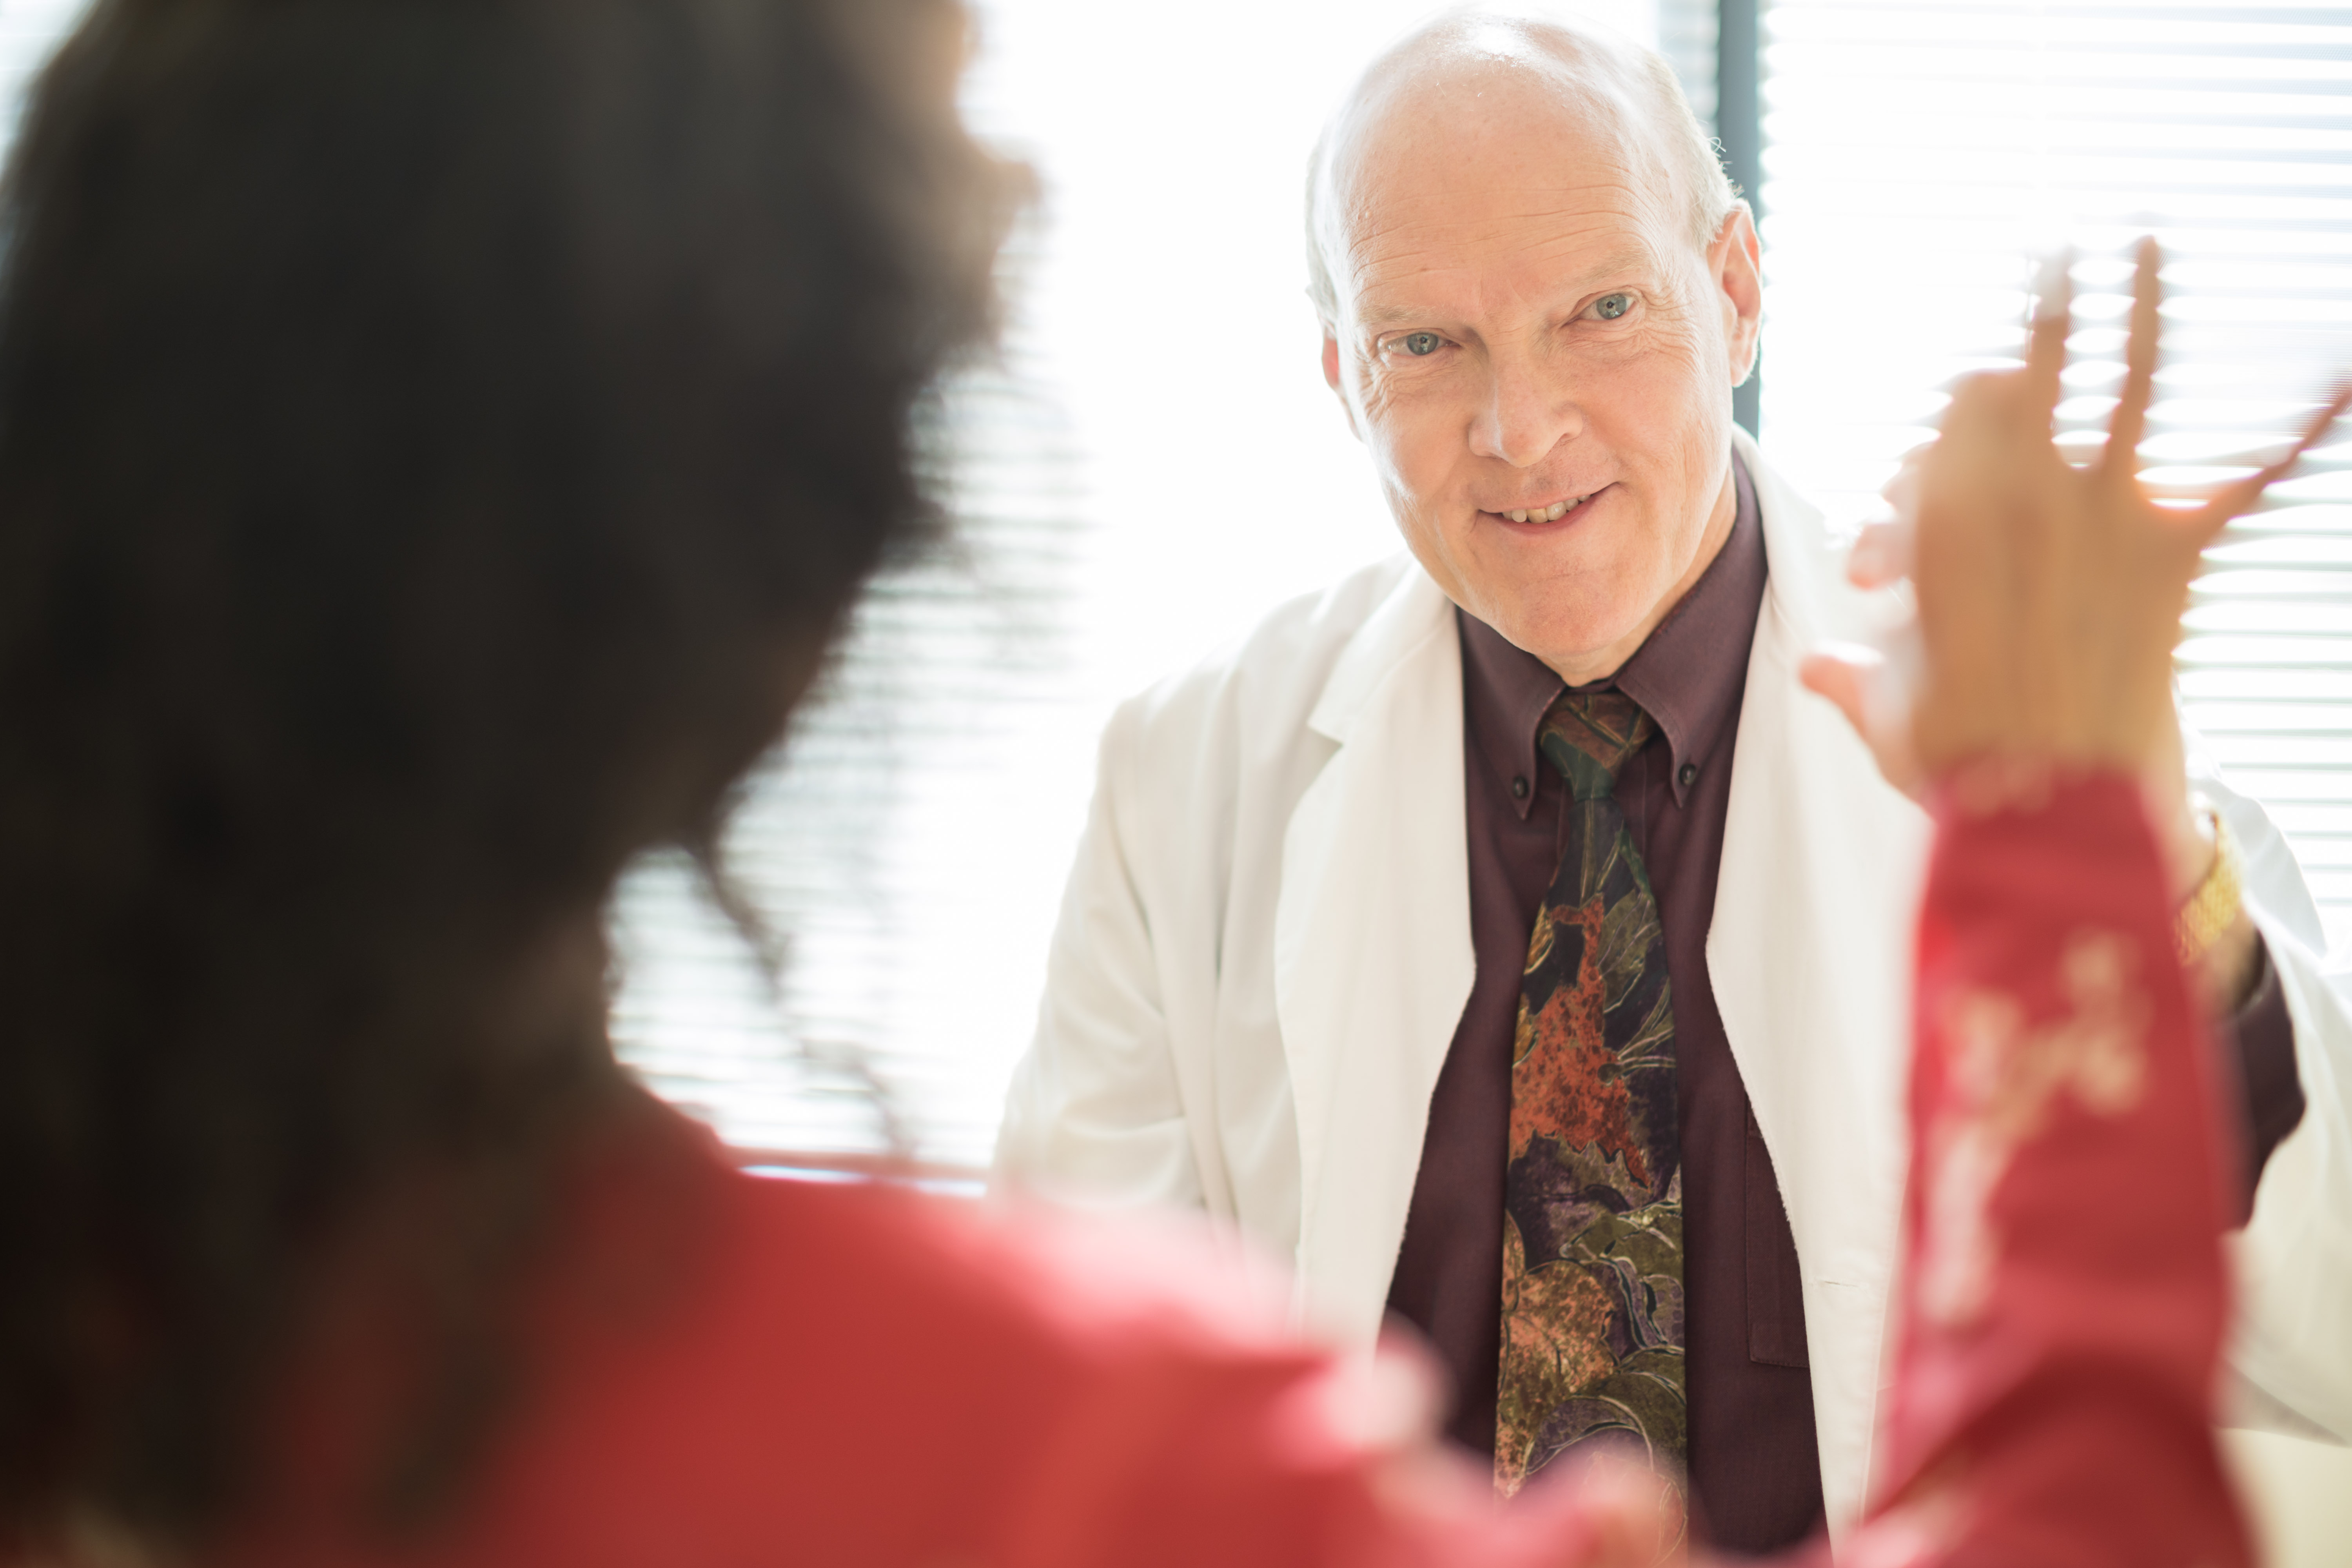 Dr. Joseph Quinn applies research findings to his care of patients